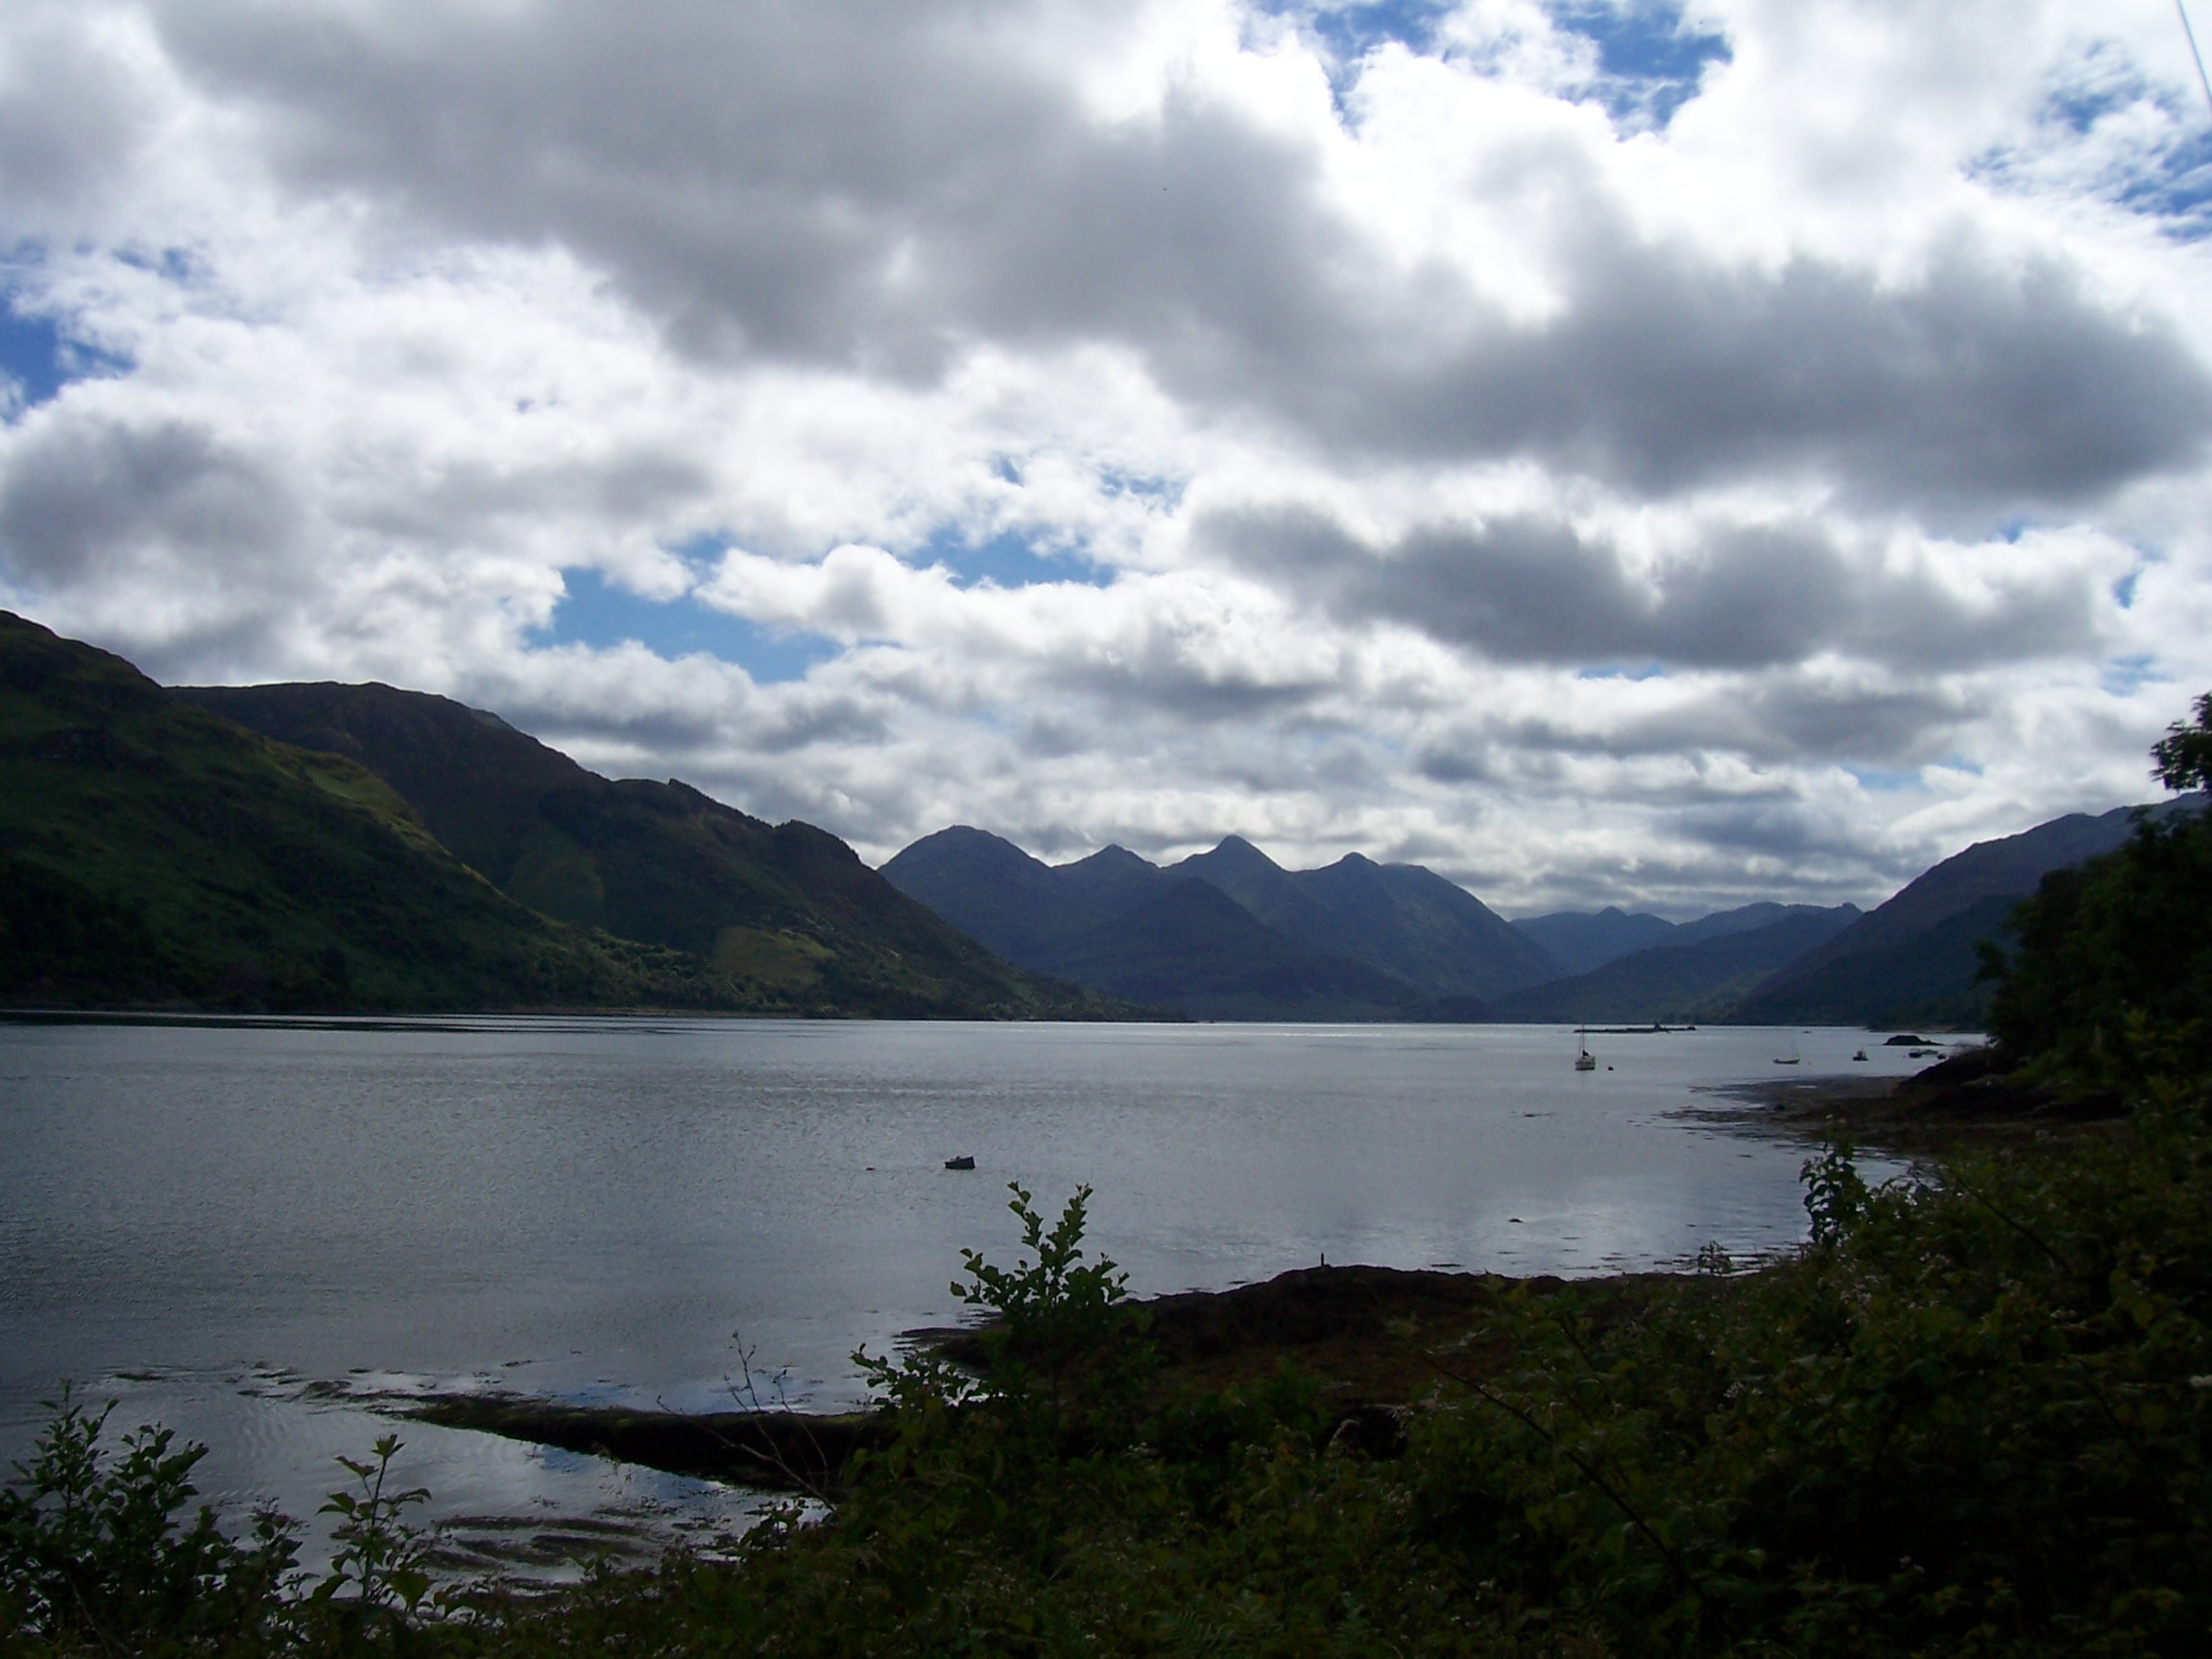 The Five Sisters and Loch Duich, Kintail, Scotland